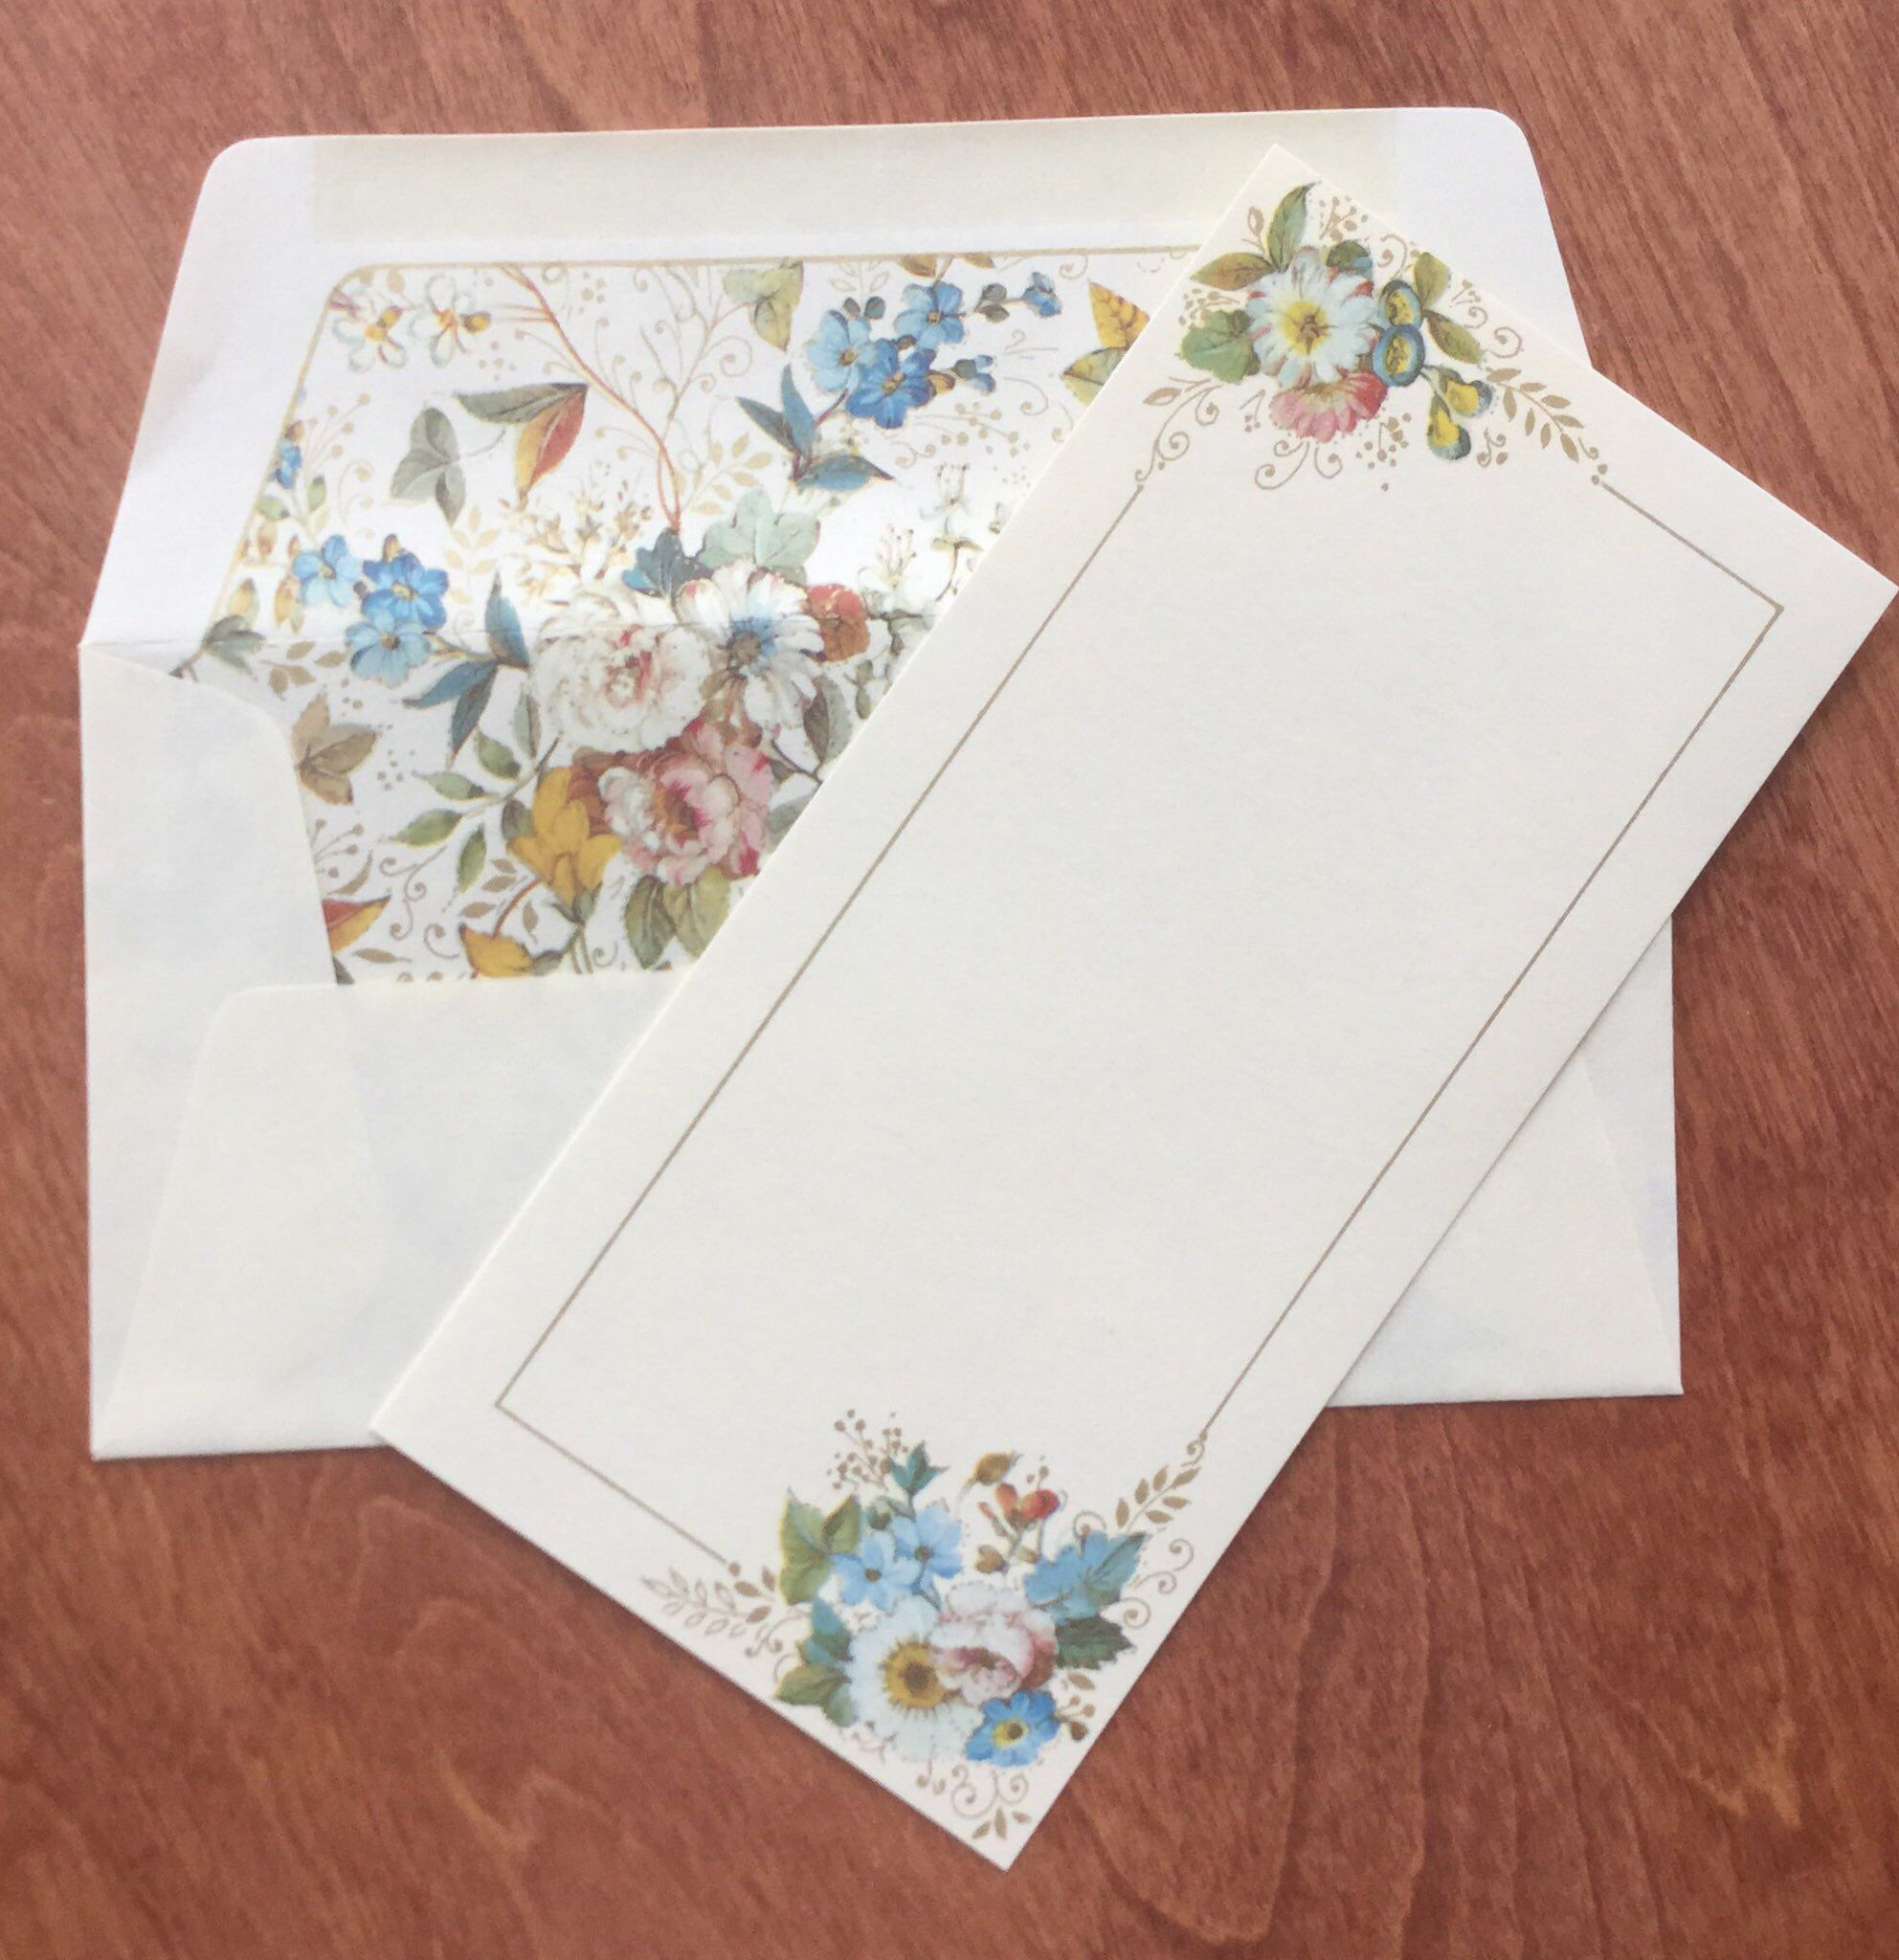 In chapter eleven, Lorenzo receives a letter from his mother, Anna. Written on her personal stationery, she urges him to return home to San Michele. This handmade paper is from the Amalfi Coast, Italy and it would have suited the elegant Anna. www.marianneperry.ca